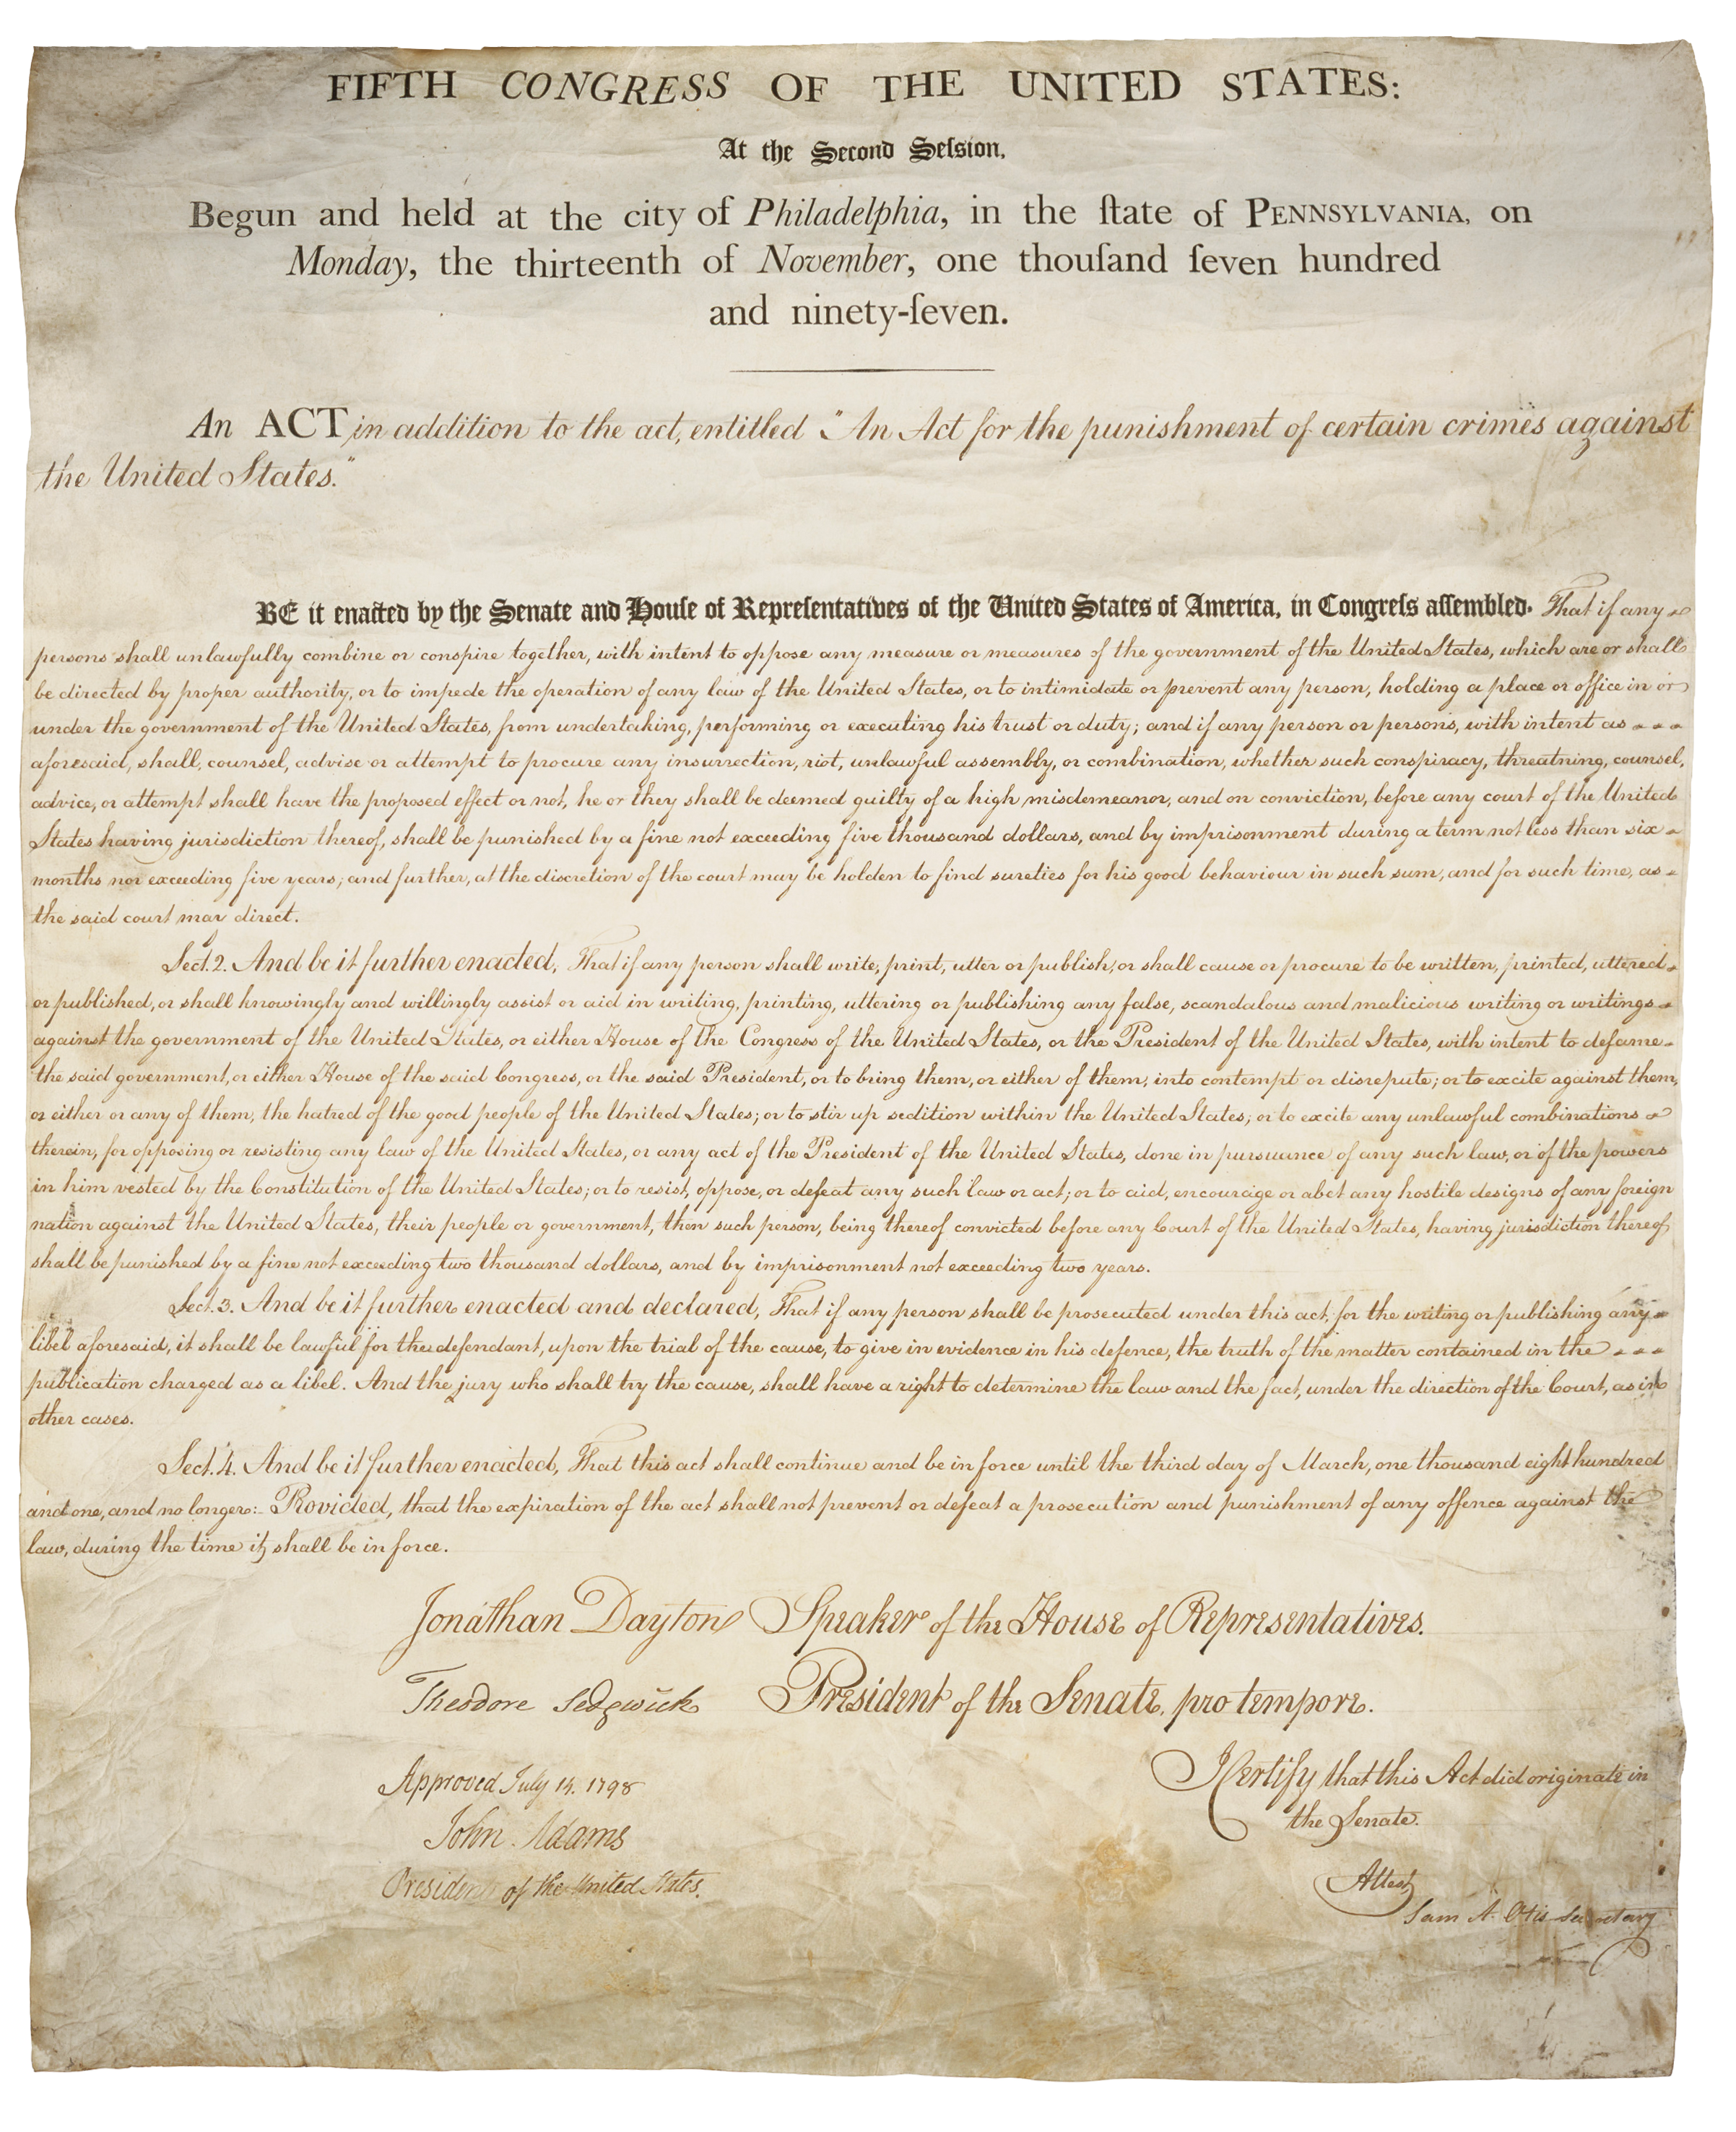 The Alien and Sedition Acts of 1798: Balancing Rights and ...